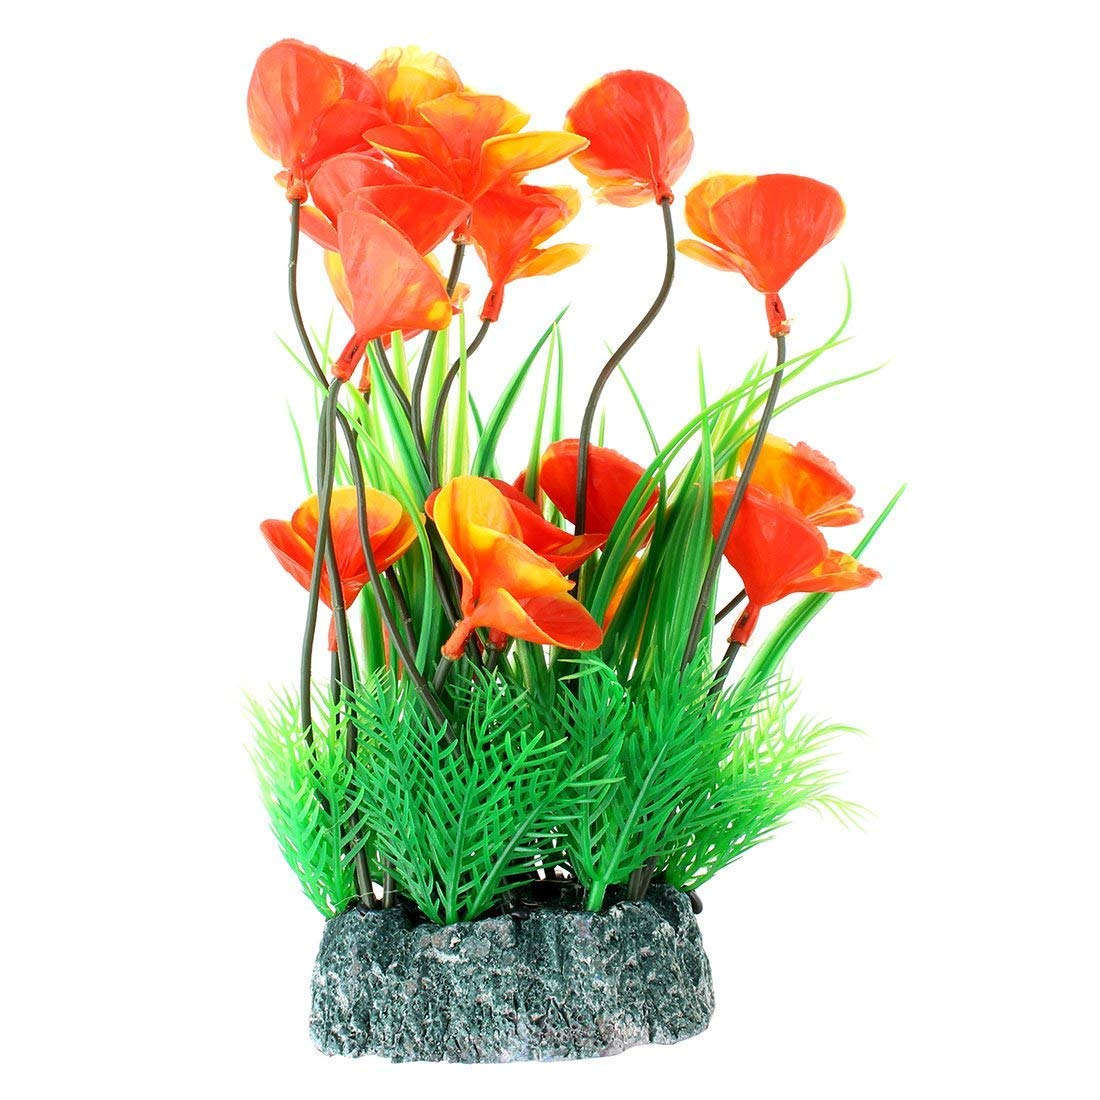 1Pc Silicone Fish Tank Emulational Glowing Water Plant Coral Decoration 25cm Height